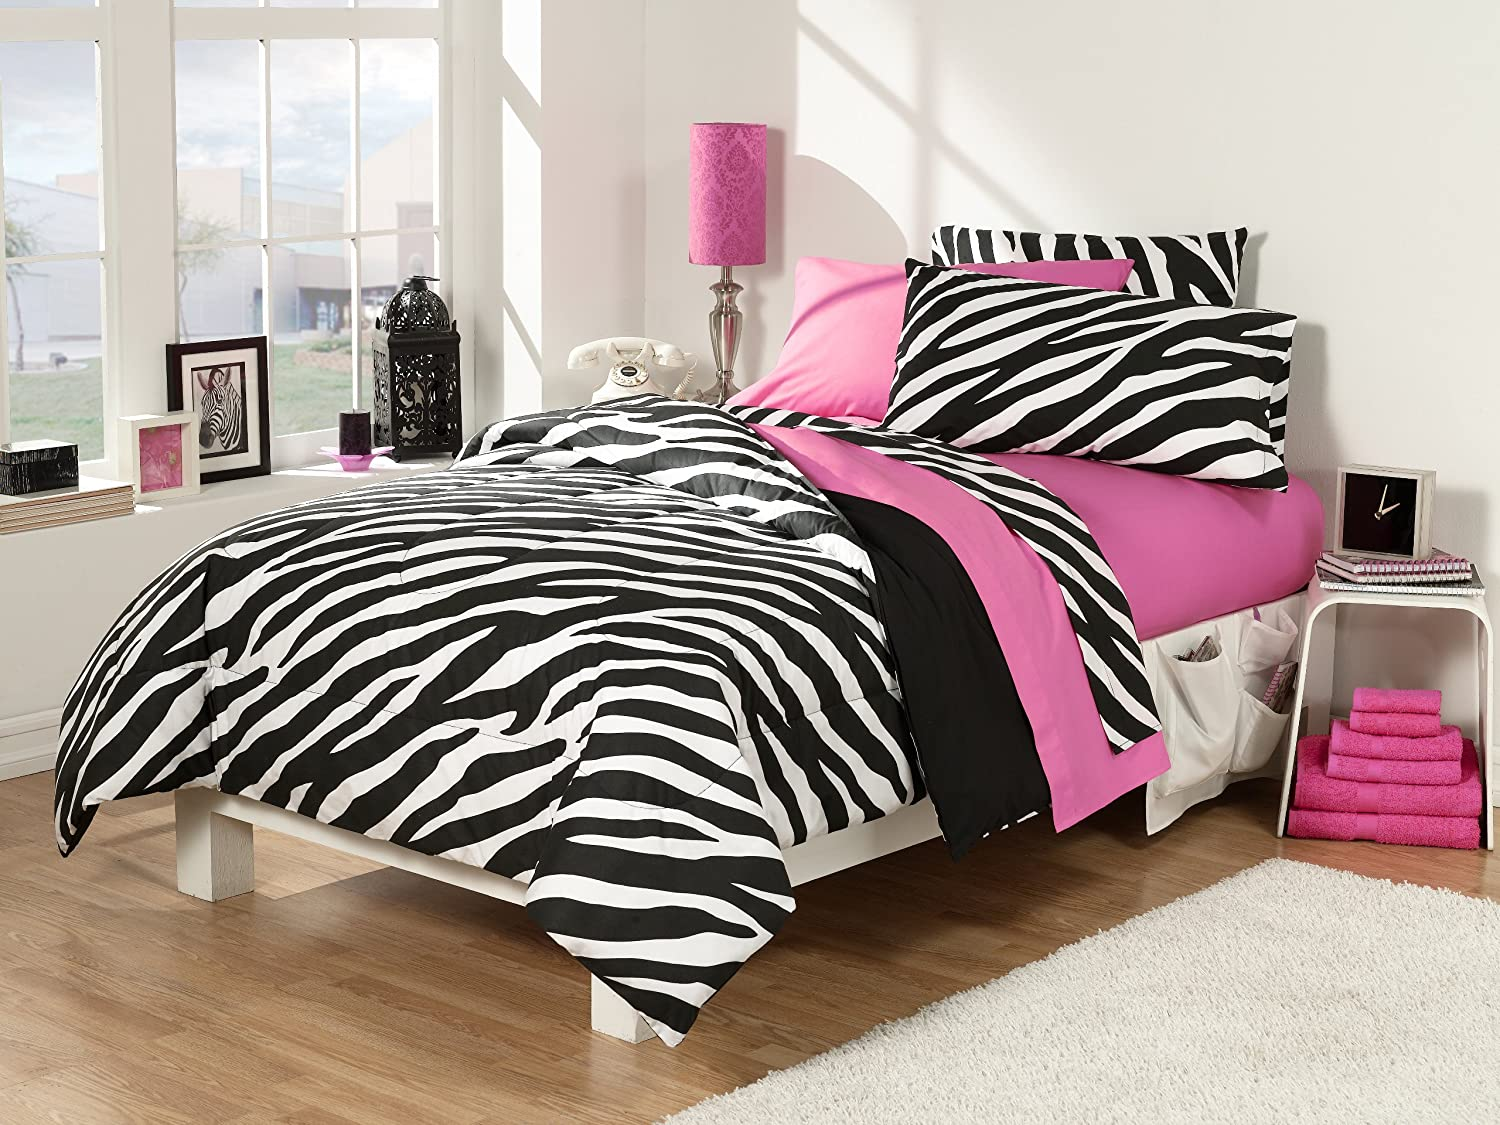 Pink and black bedding - Amazon Com Back To School 30 Piece Dorm Room Superset Twin Extra Long Zebra Pink Home Kitchen